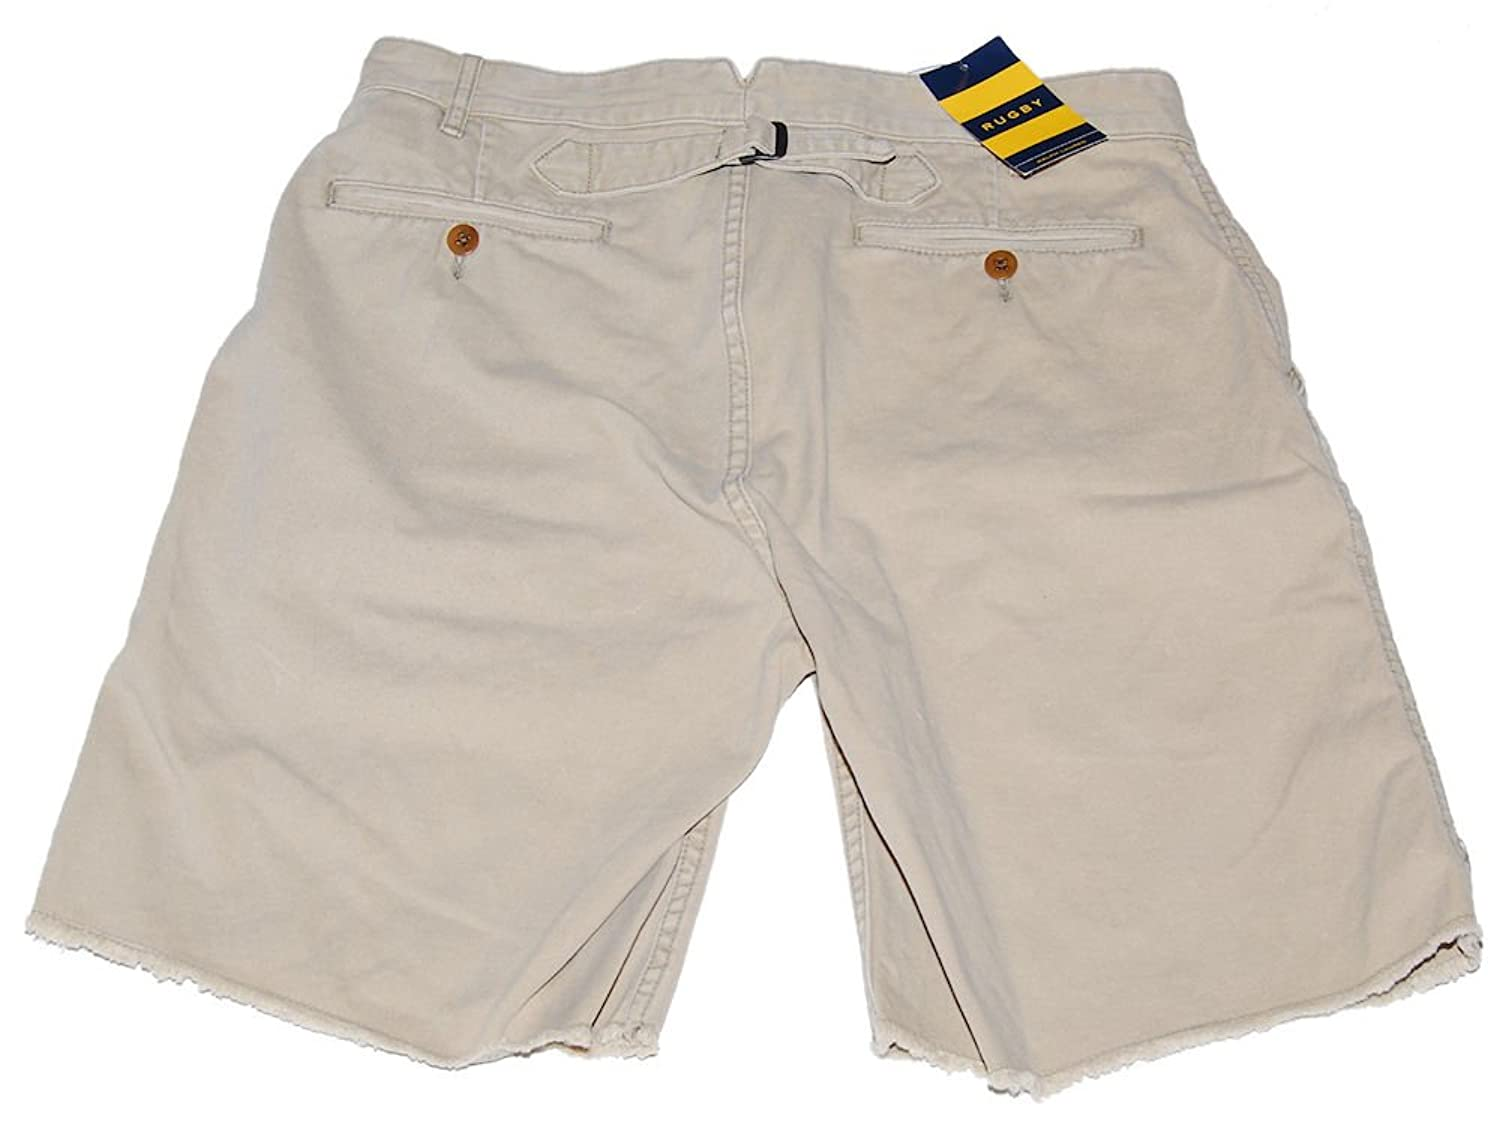 Polo Ralph Lauren Rugby Mens Shorts Khaki Tan Brown Flat Front ...